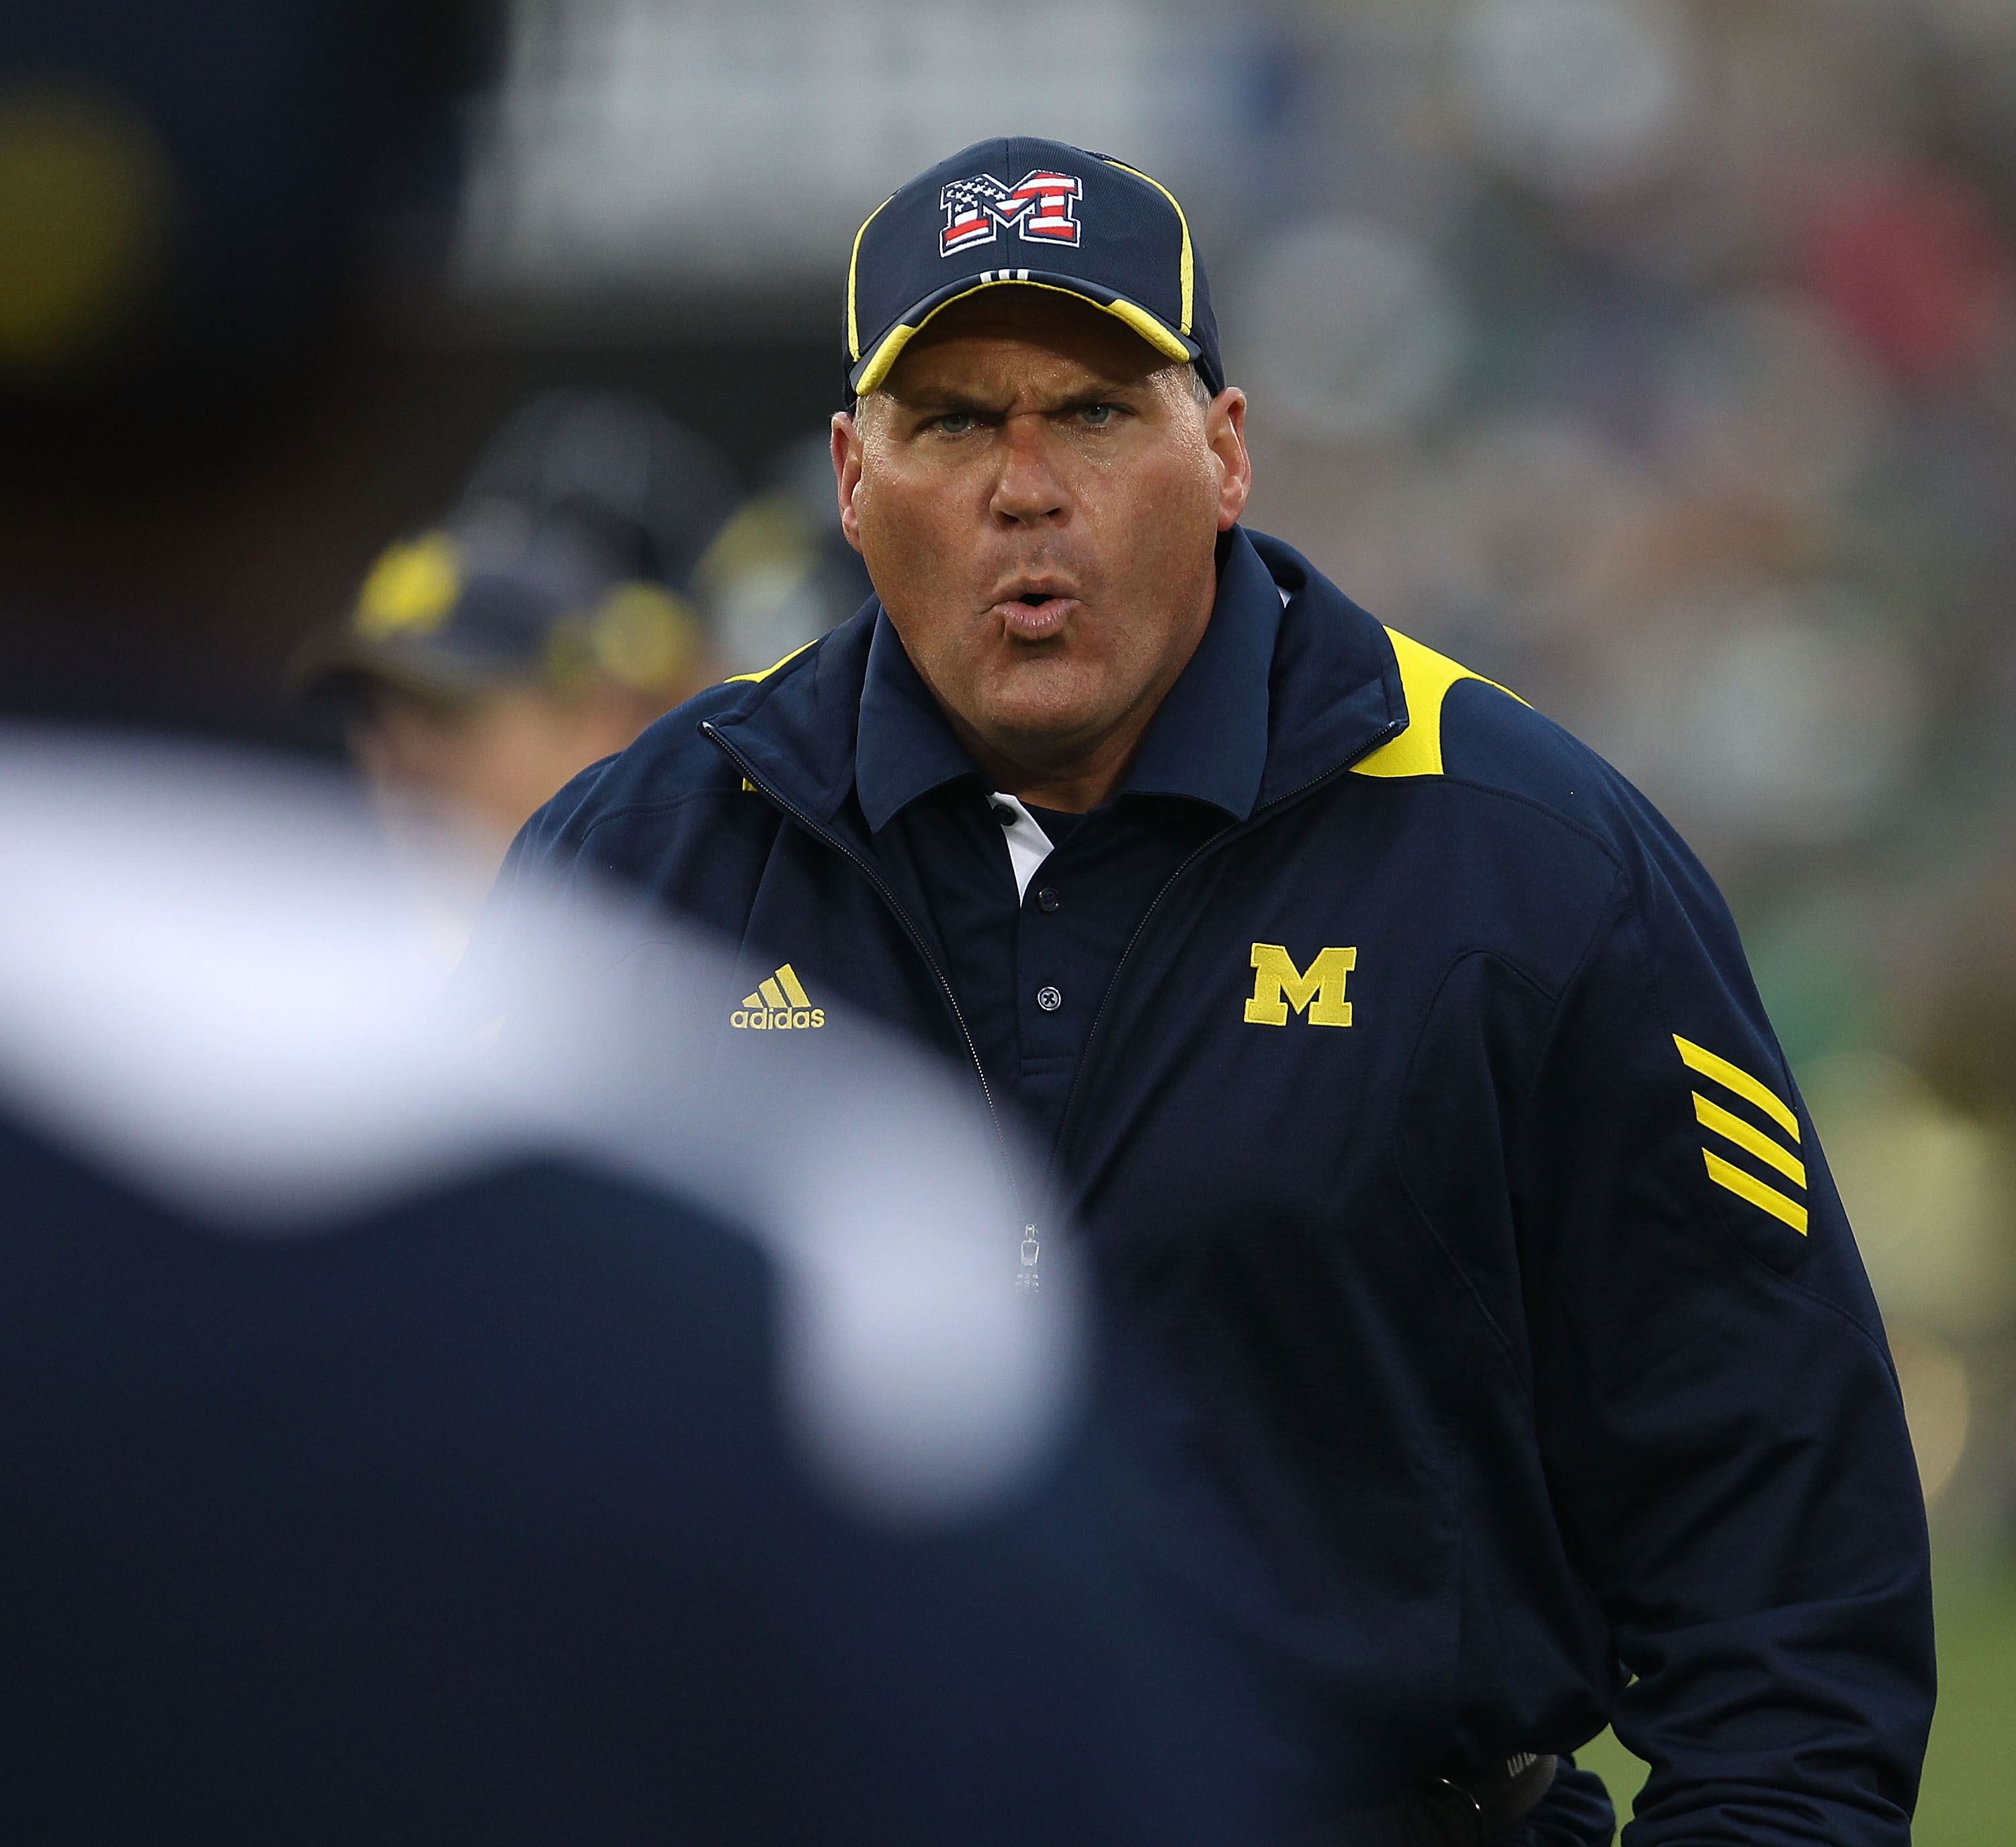 11 Possible Replacements On The View: Michigan Football: Rich Rodriguez's 10 Possible